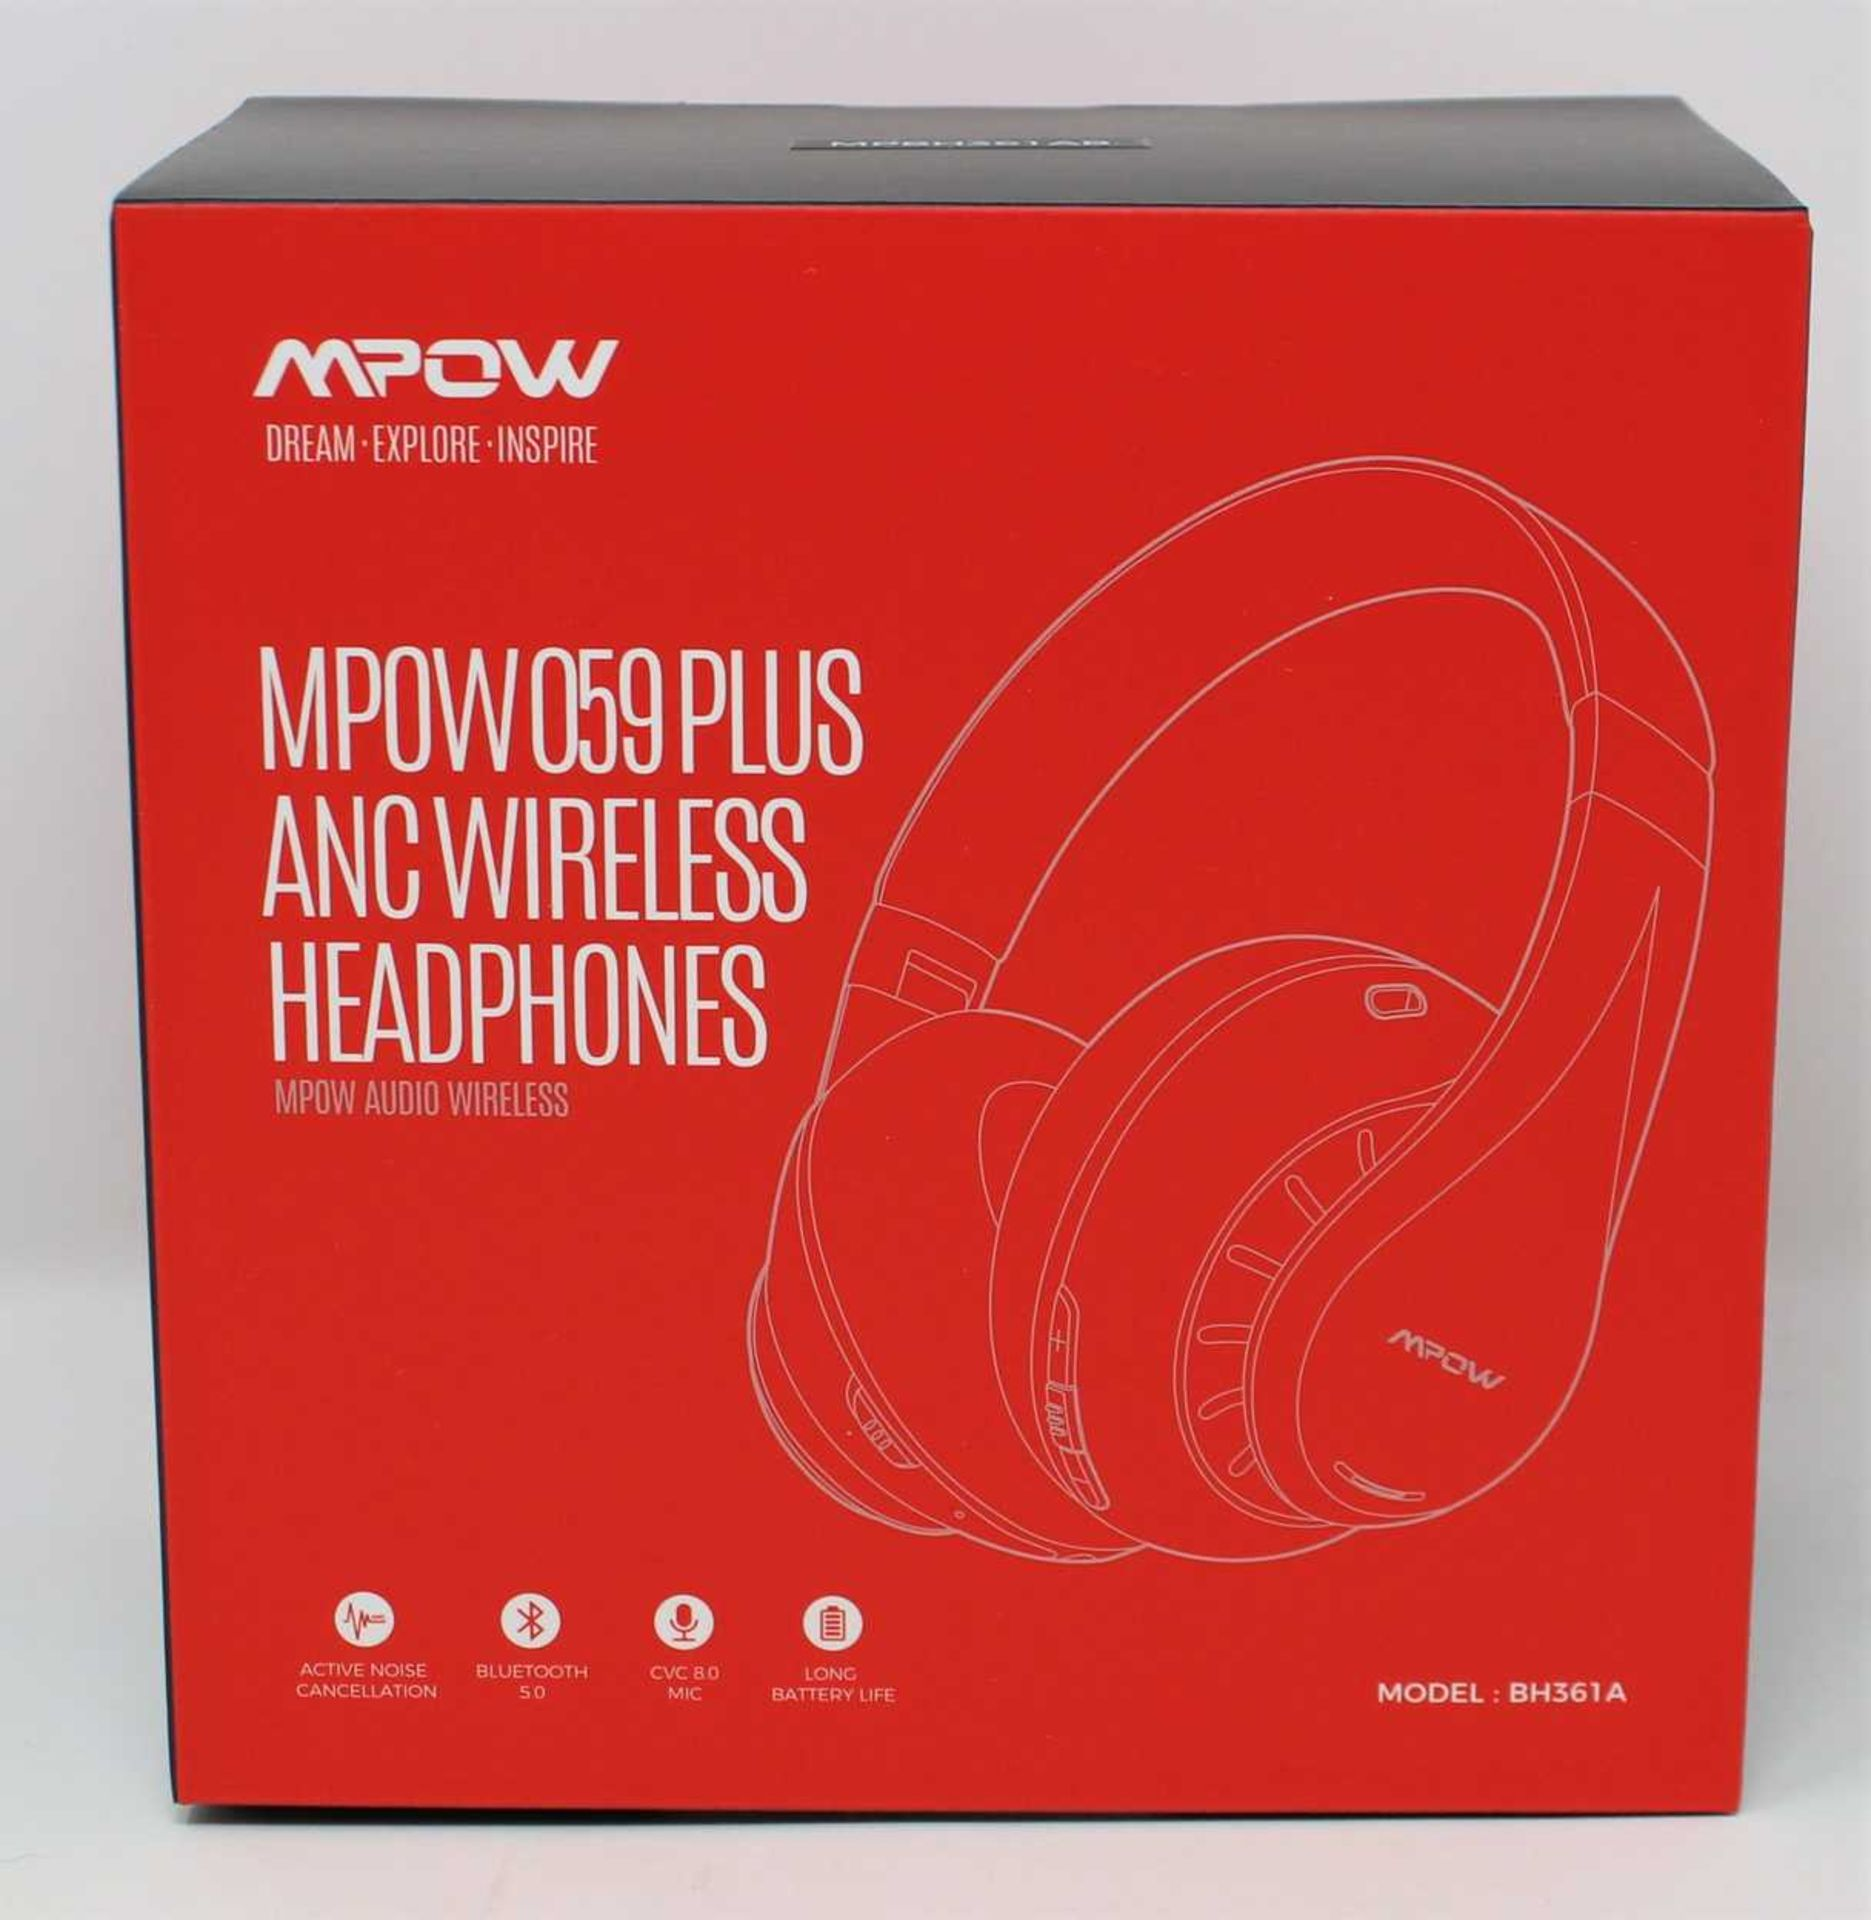 A boxed as new pair of Mpow 059 Plus Active Noise Cancelling Headphones in Black & Red (MPBH361AB).